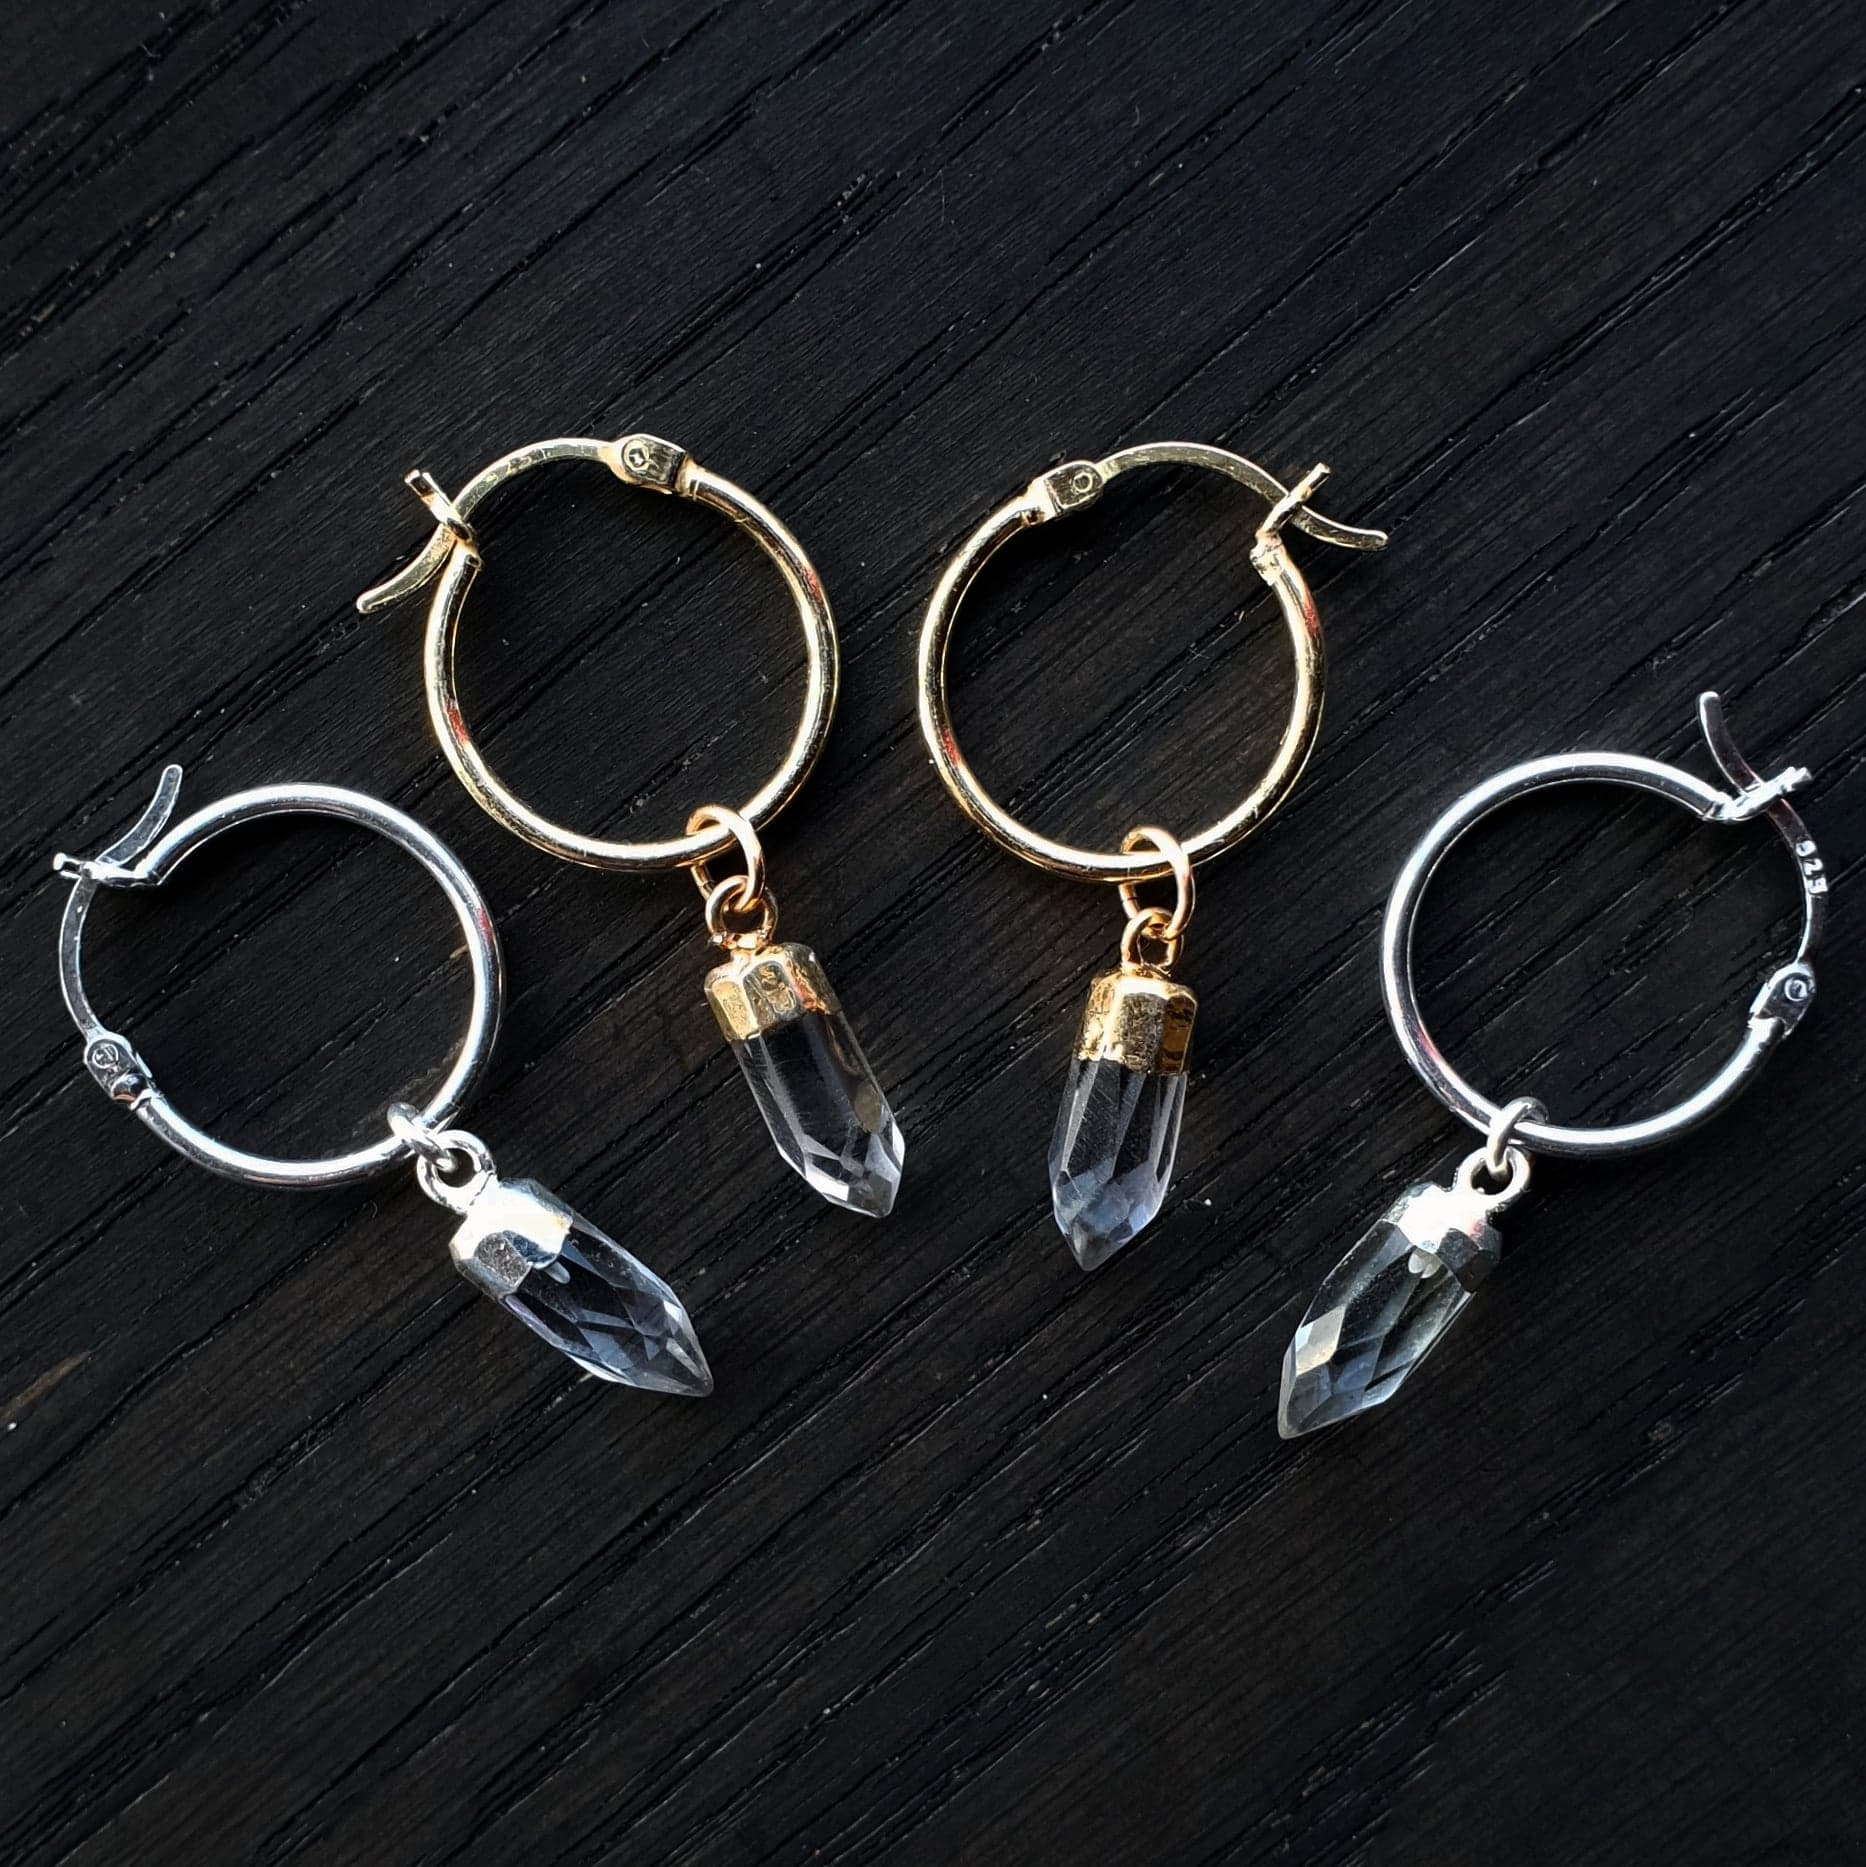 Emily Eliza Arlotte Handcrafted Fine Jewellery - Handmade Australian Tasmanian Jewelry Ethically Made Sustainable Recycled Sterling Silver Gold Quartz Labradorite Onyx Gemstone Crystal Hoop Charm Earrings Contemporary Dainty Statement Unique Trendy Modern Necklace Boho Bohemian Gypsy Witchy Alternative Style Festival Fashion Shop Online Boutique